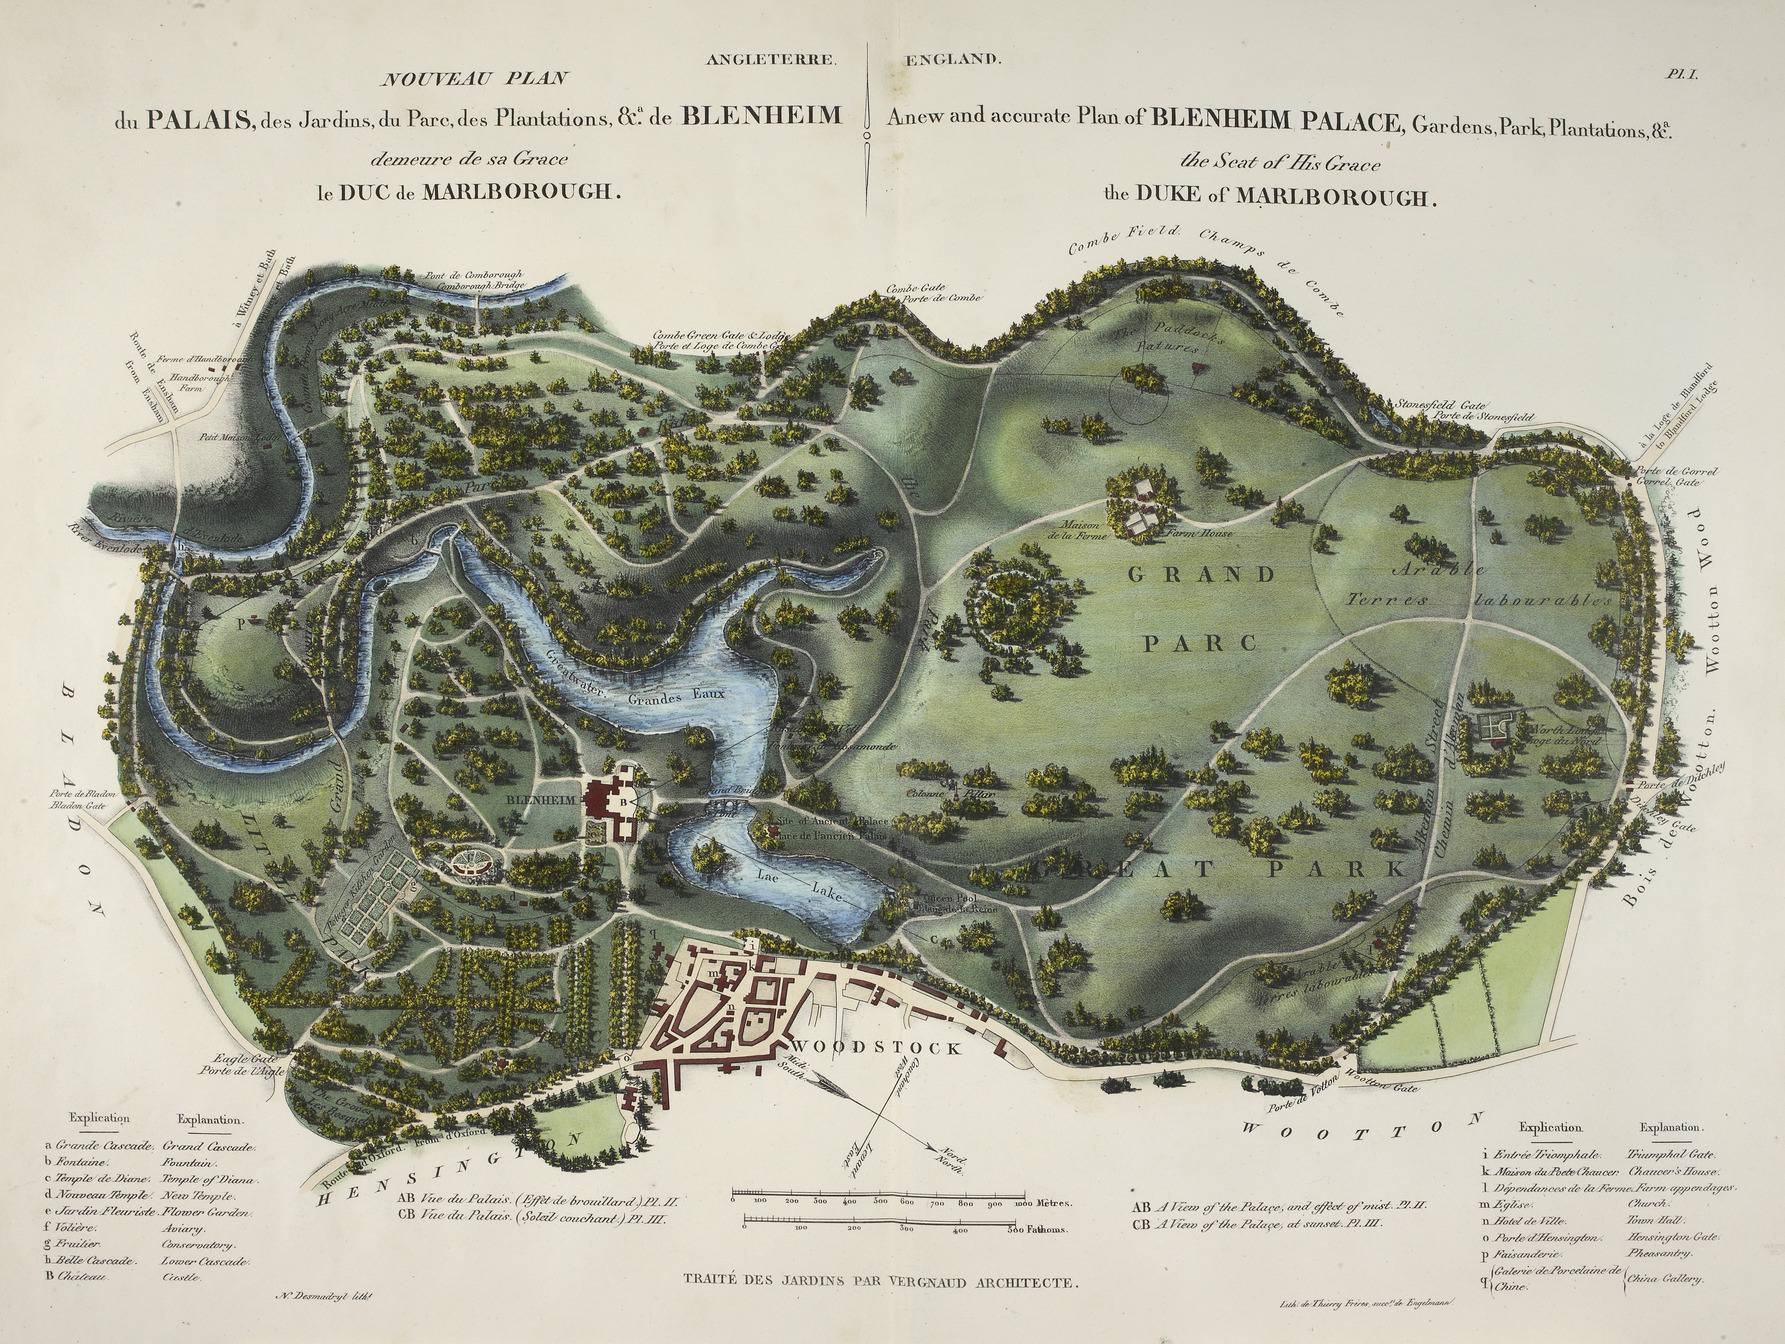 An overview of the Blenheim Palace park designed by Capability Brown